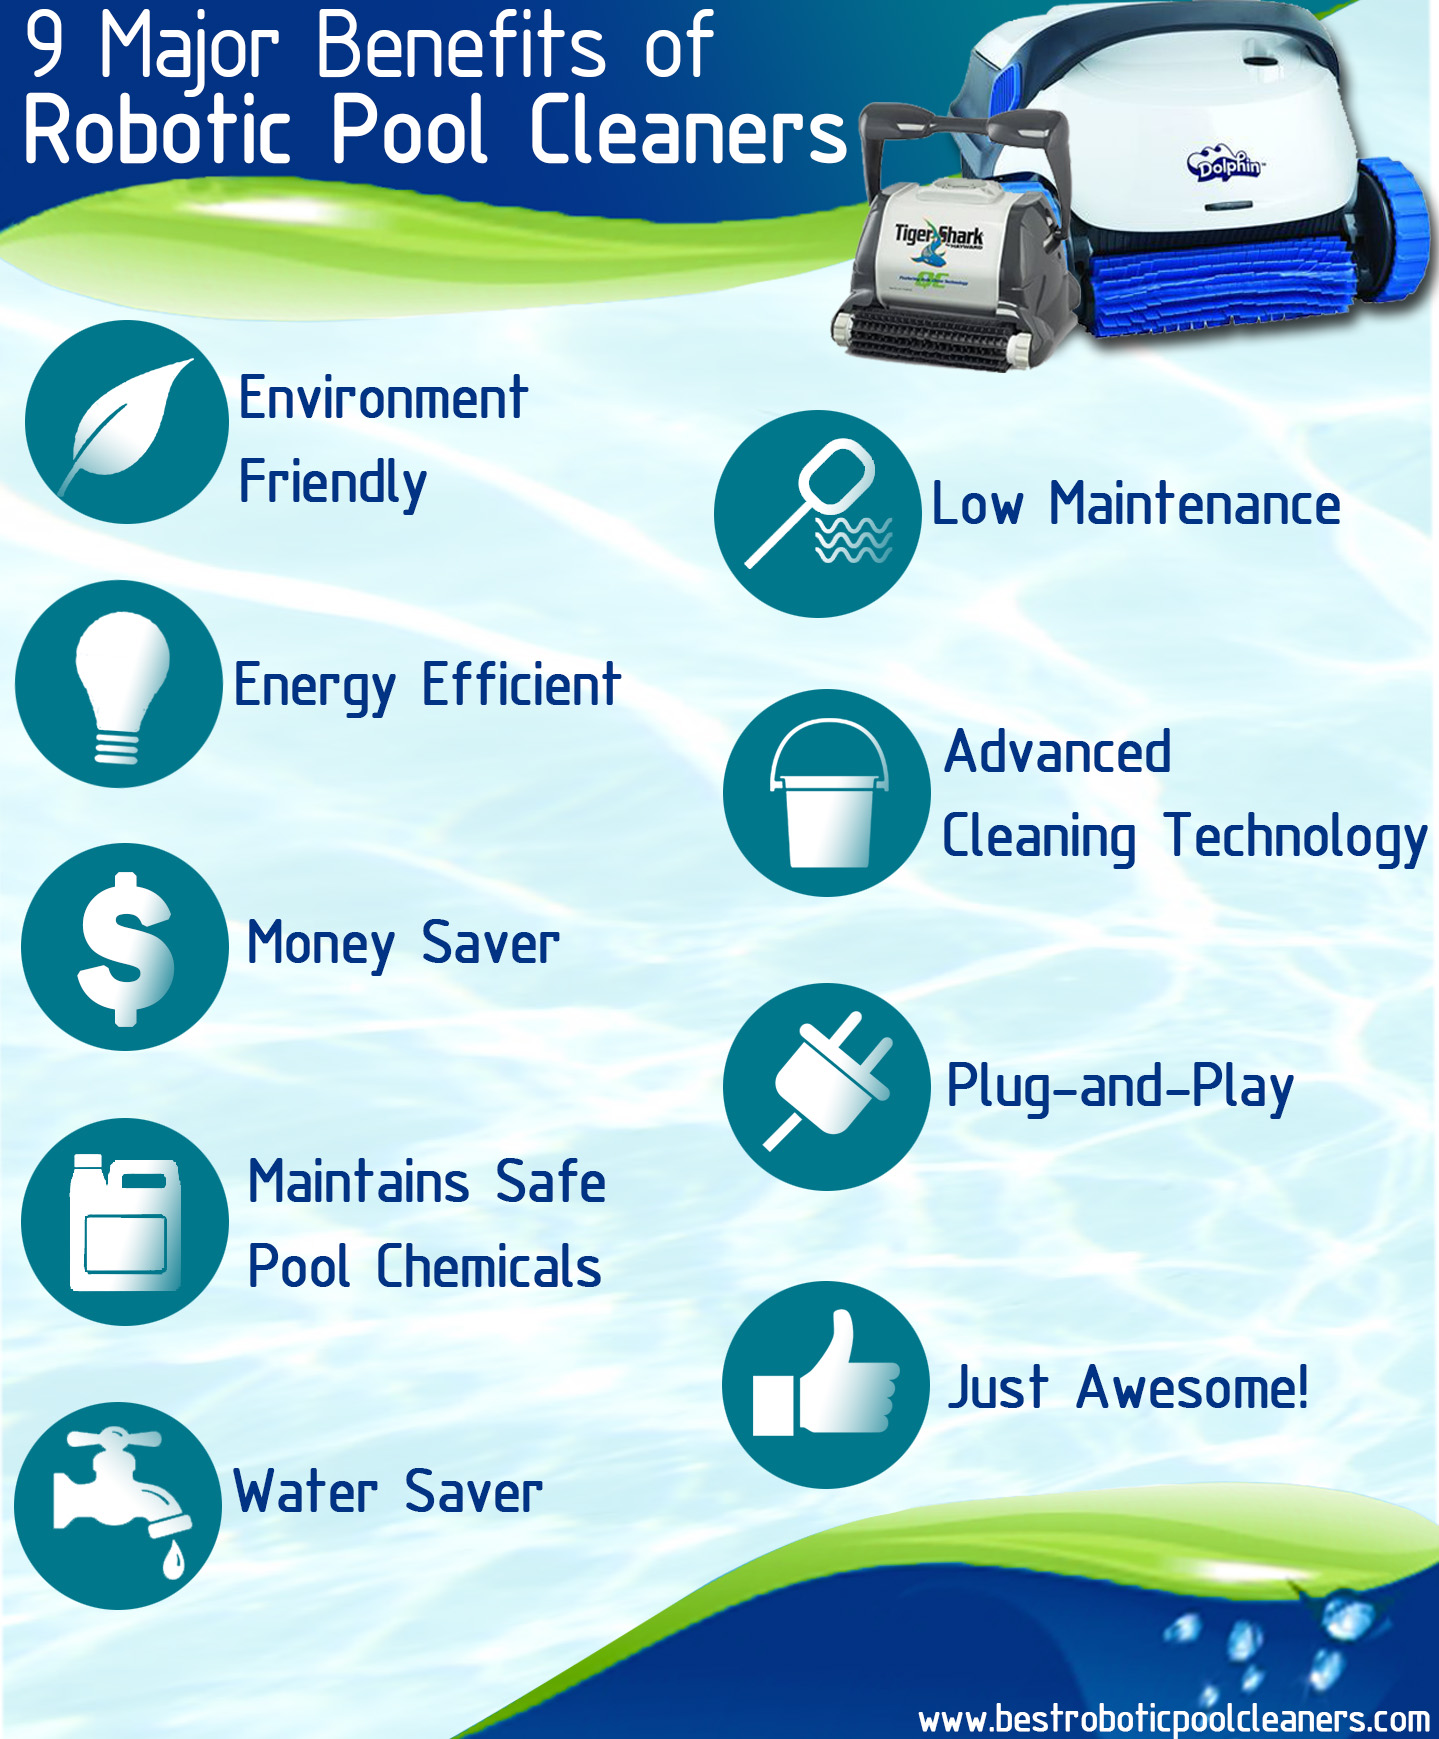 9-Major-Benefits-of-Robotic-Pool-Cleaner